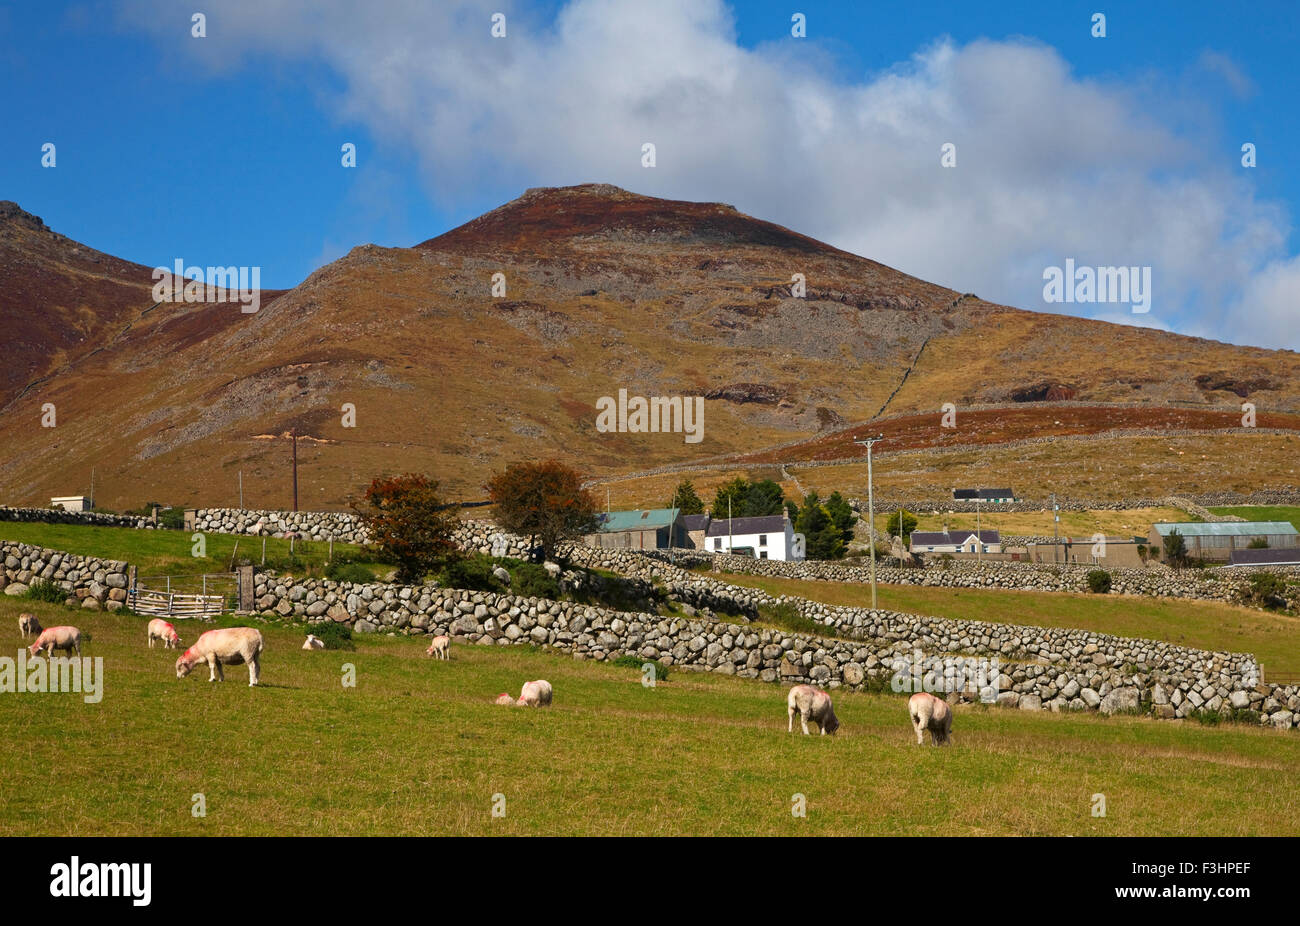 Farmland, Stone Walls in the midste of the Mountains of Mourne, Near Kilkeel on the Silent Valley Road, County Down, - Stock Image